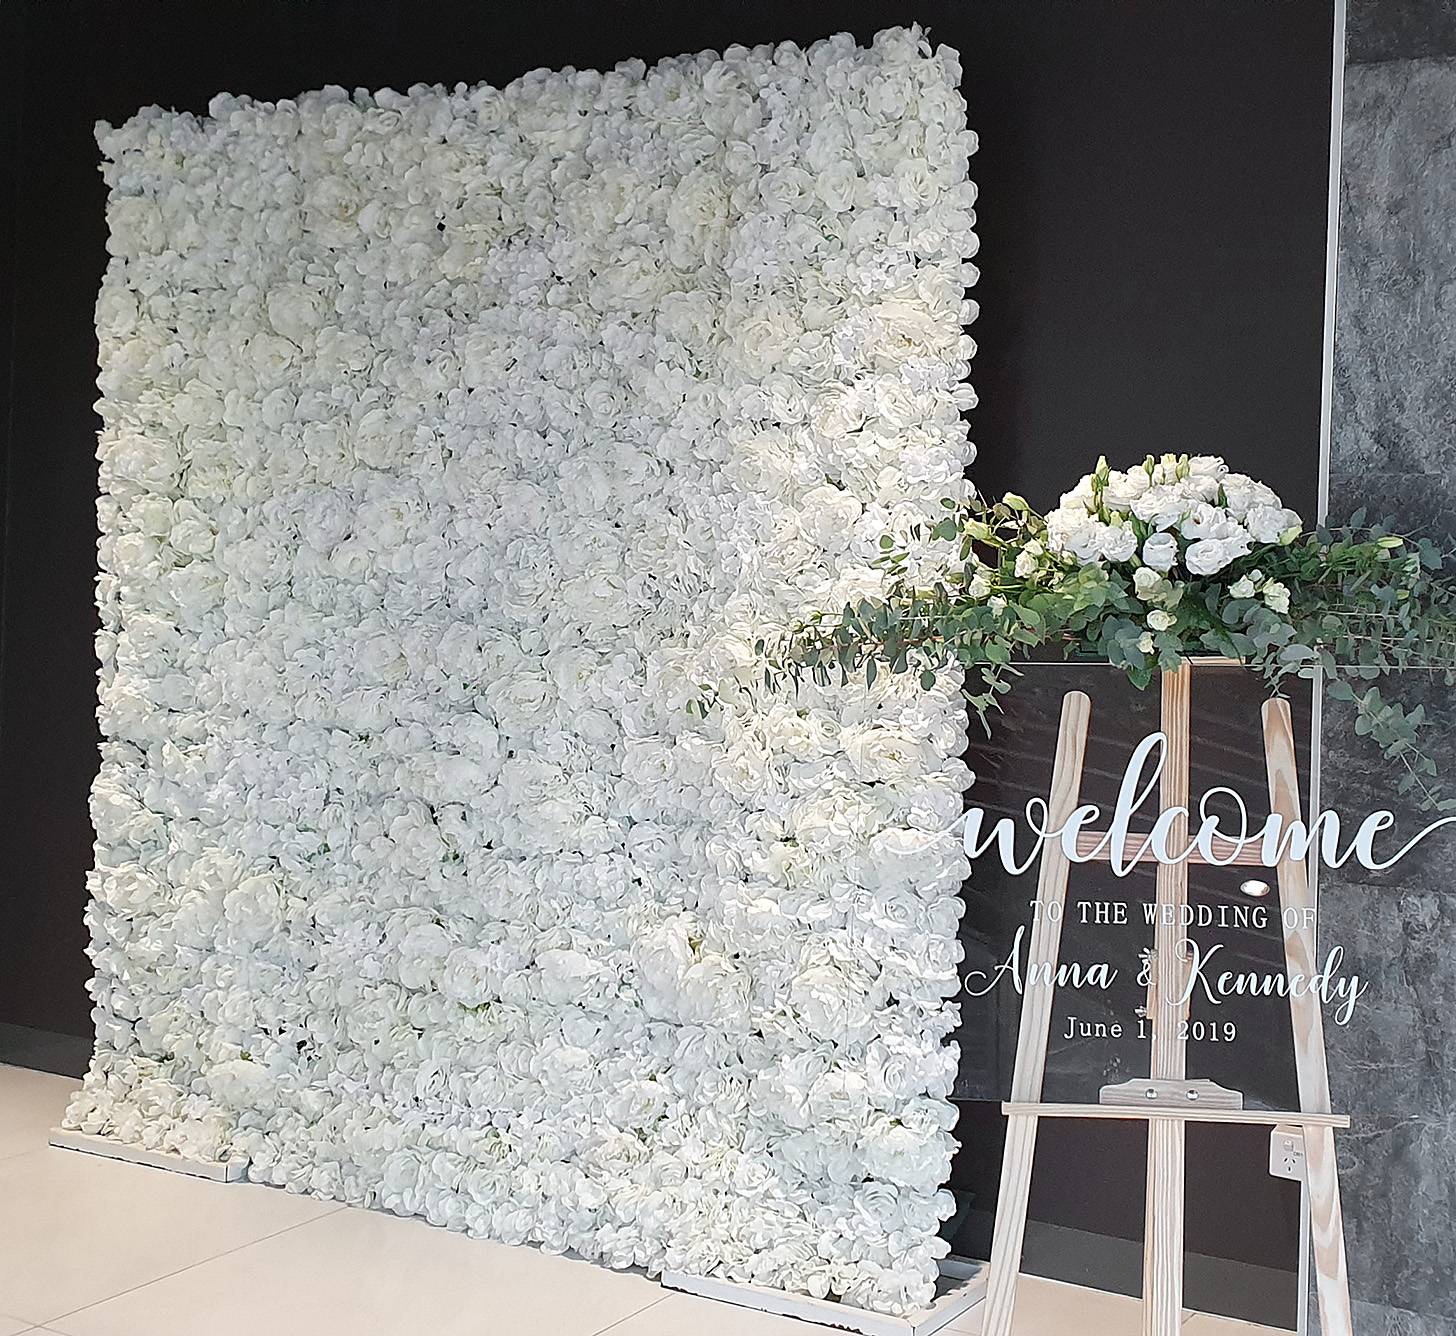 White Flower Wall $185.00